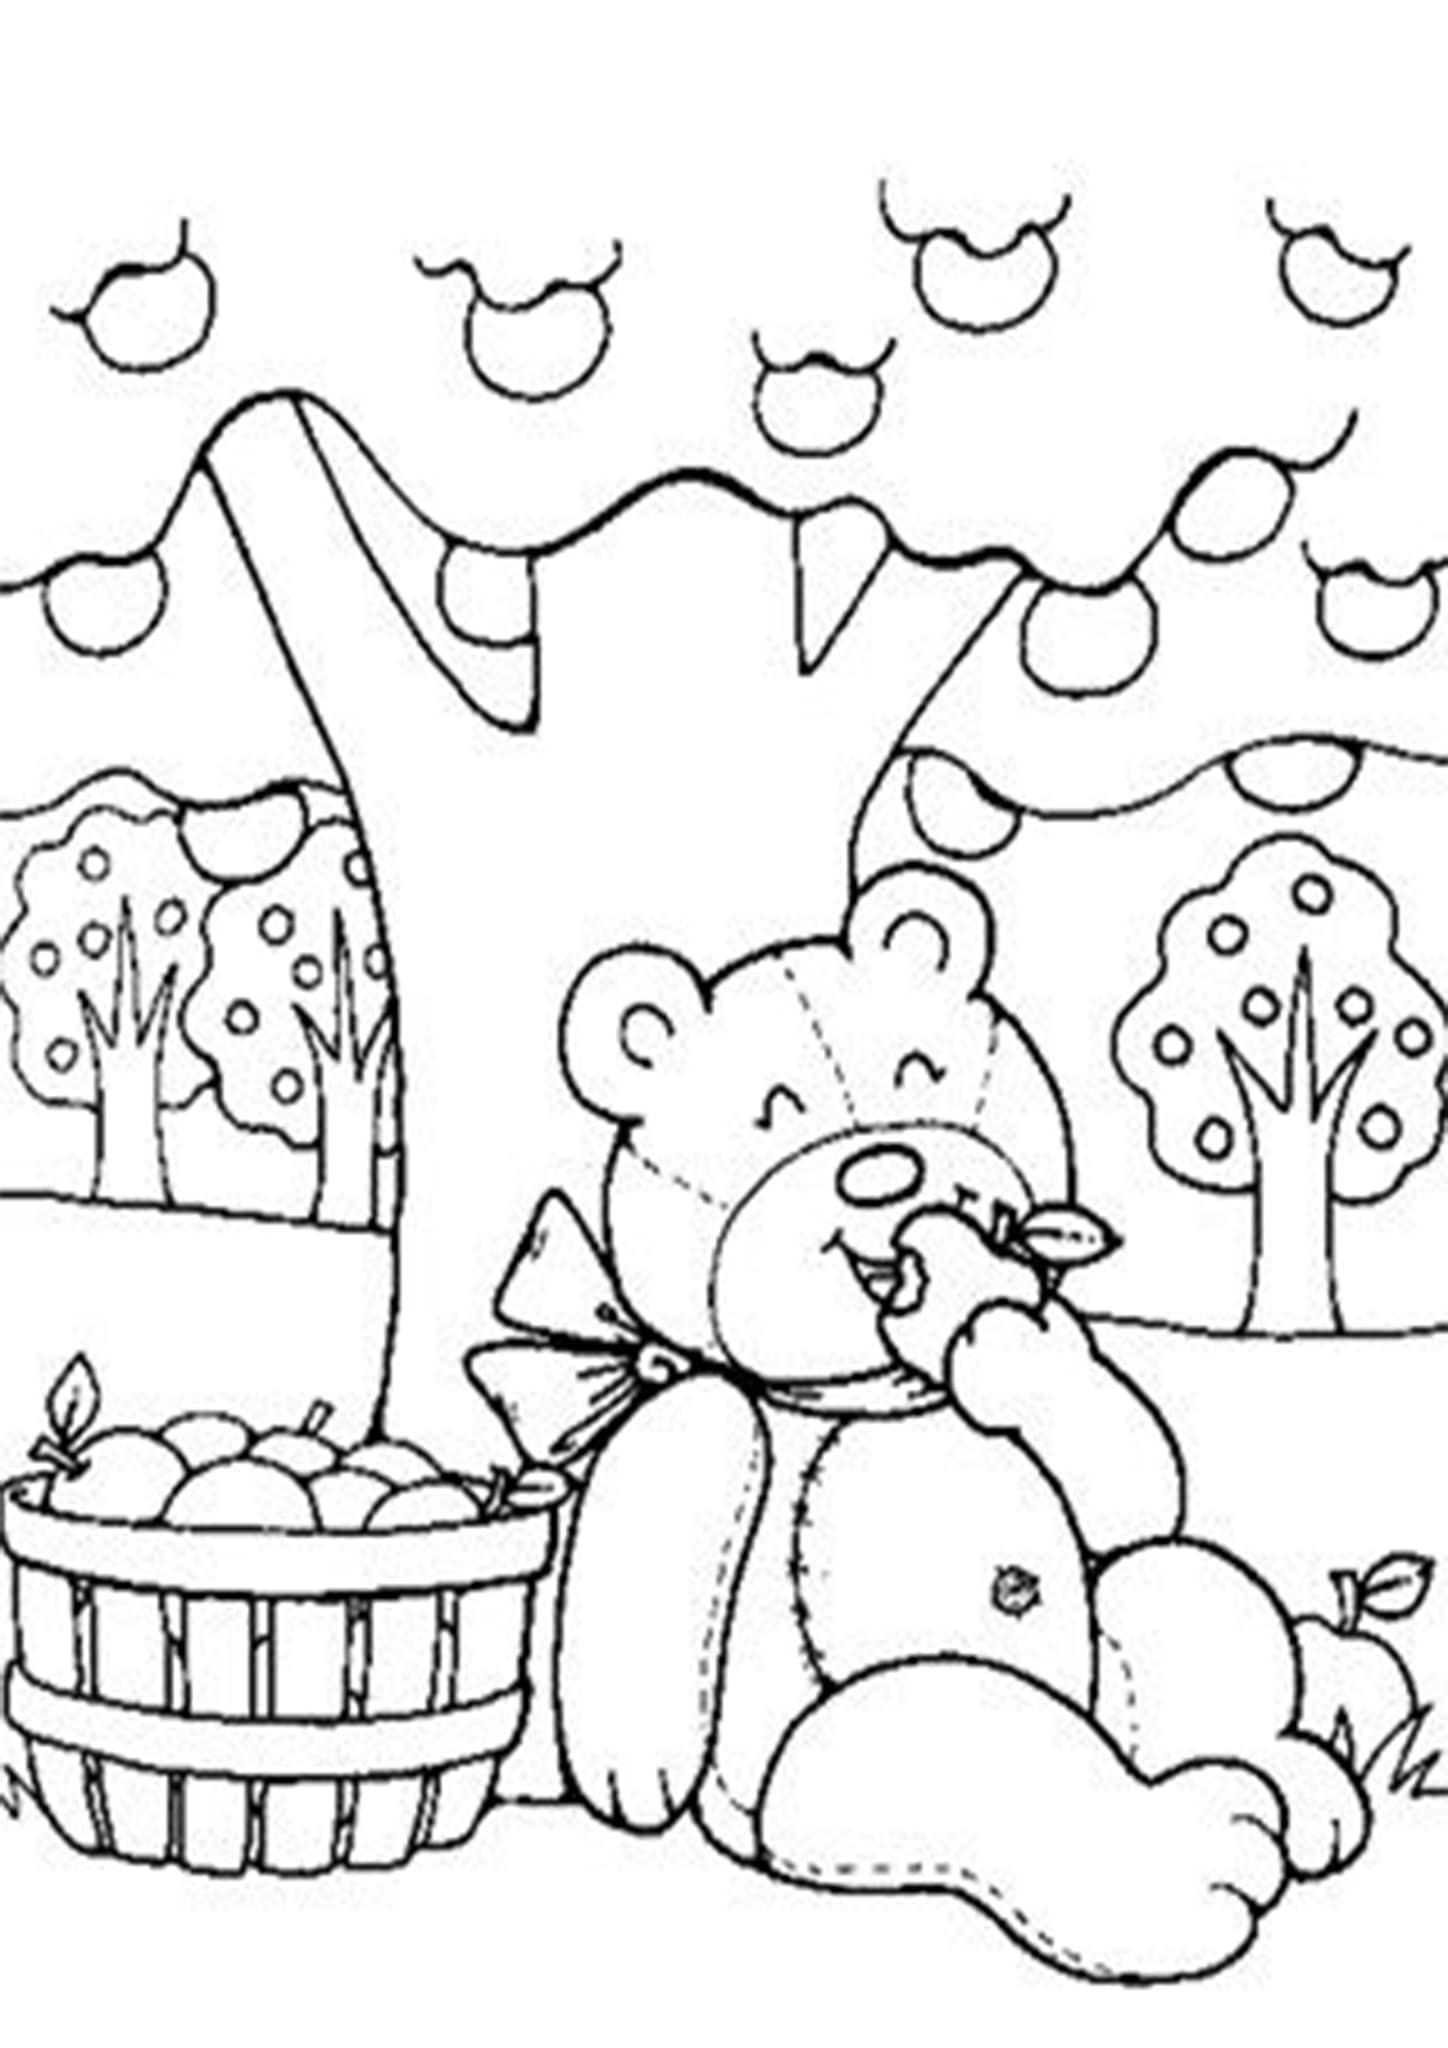 Free Easy To Print Bear Coloring Pages Apple Coloring Pages Teddy Bear Coloring Pages Bear Coloring Pages